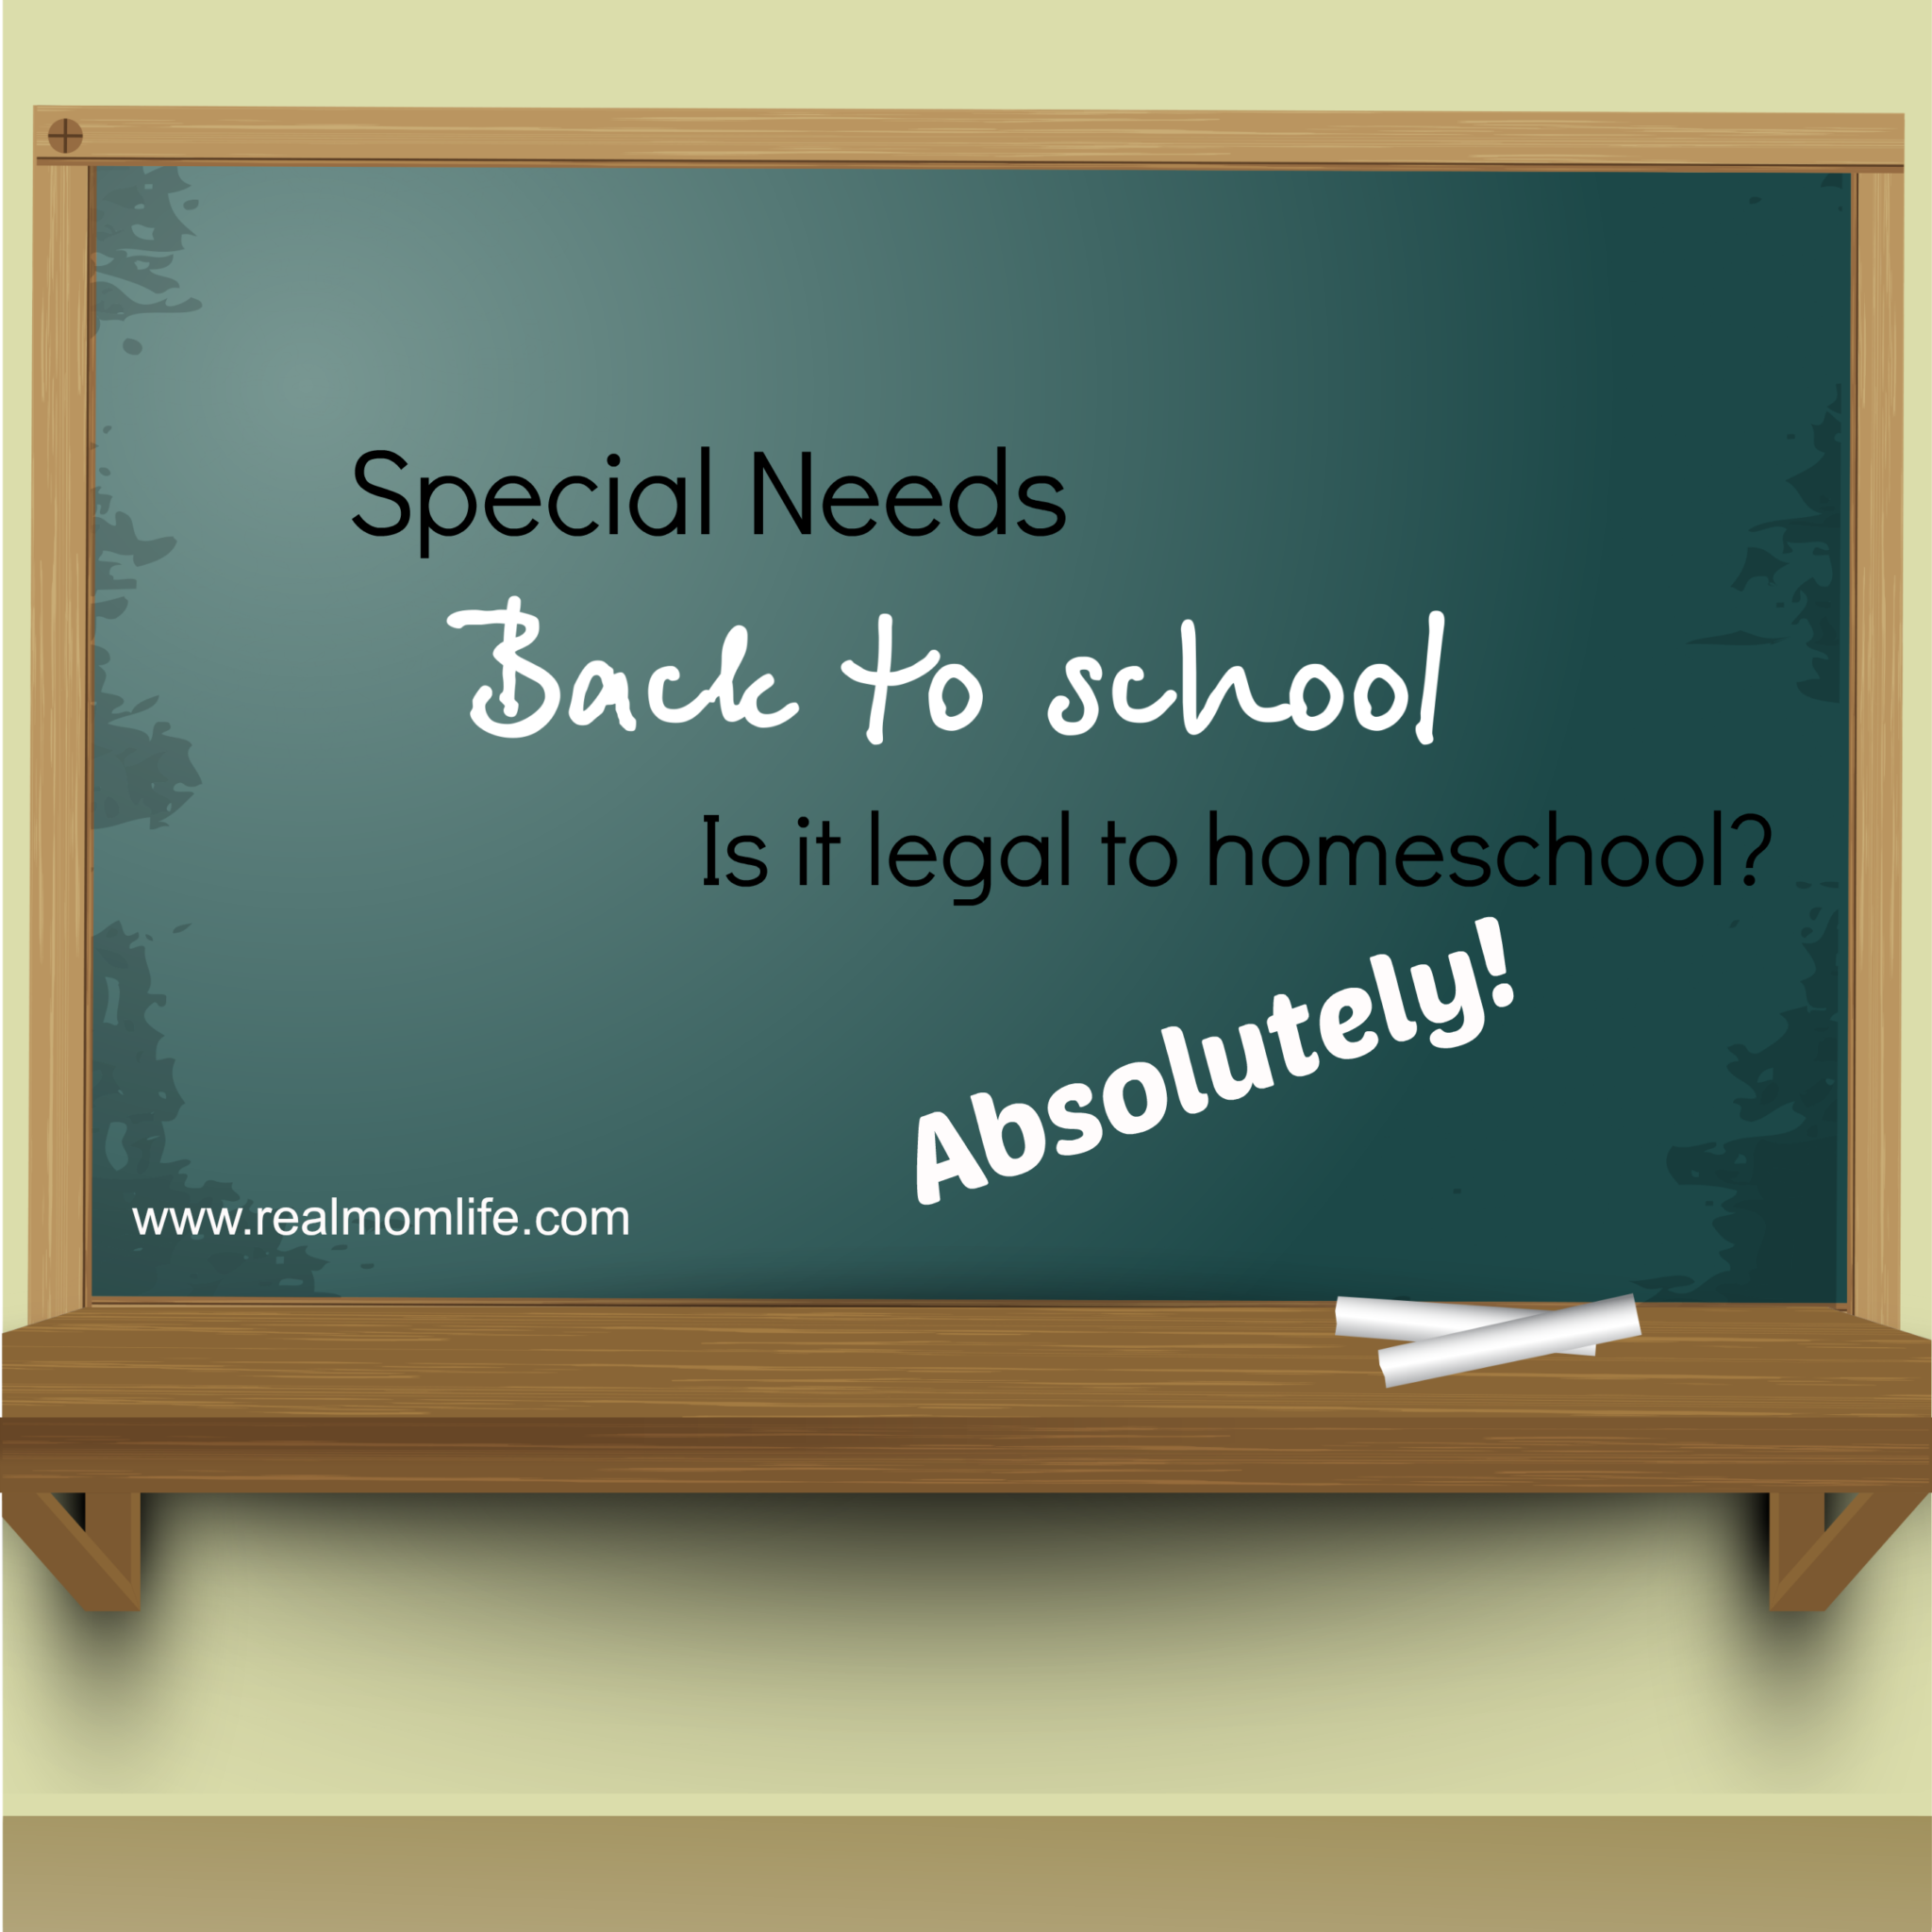 Special needs: Is it legal to homeschool?